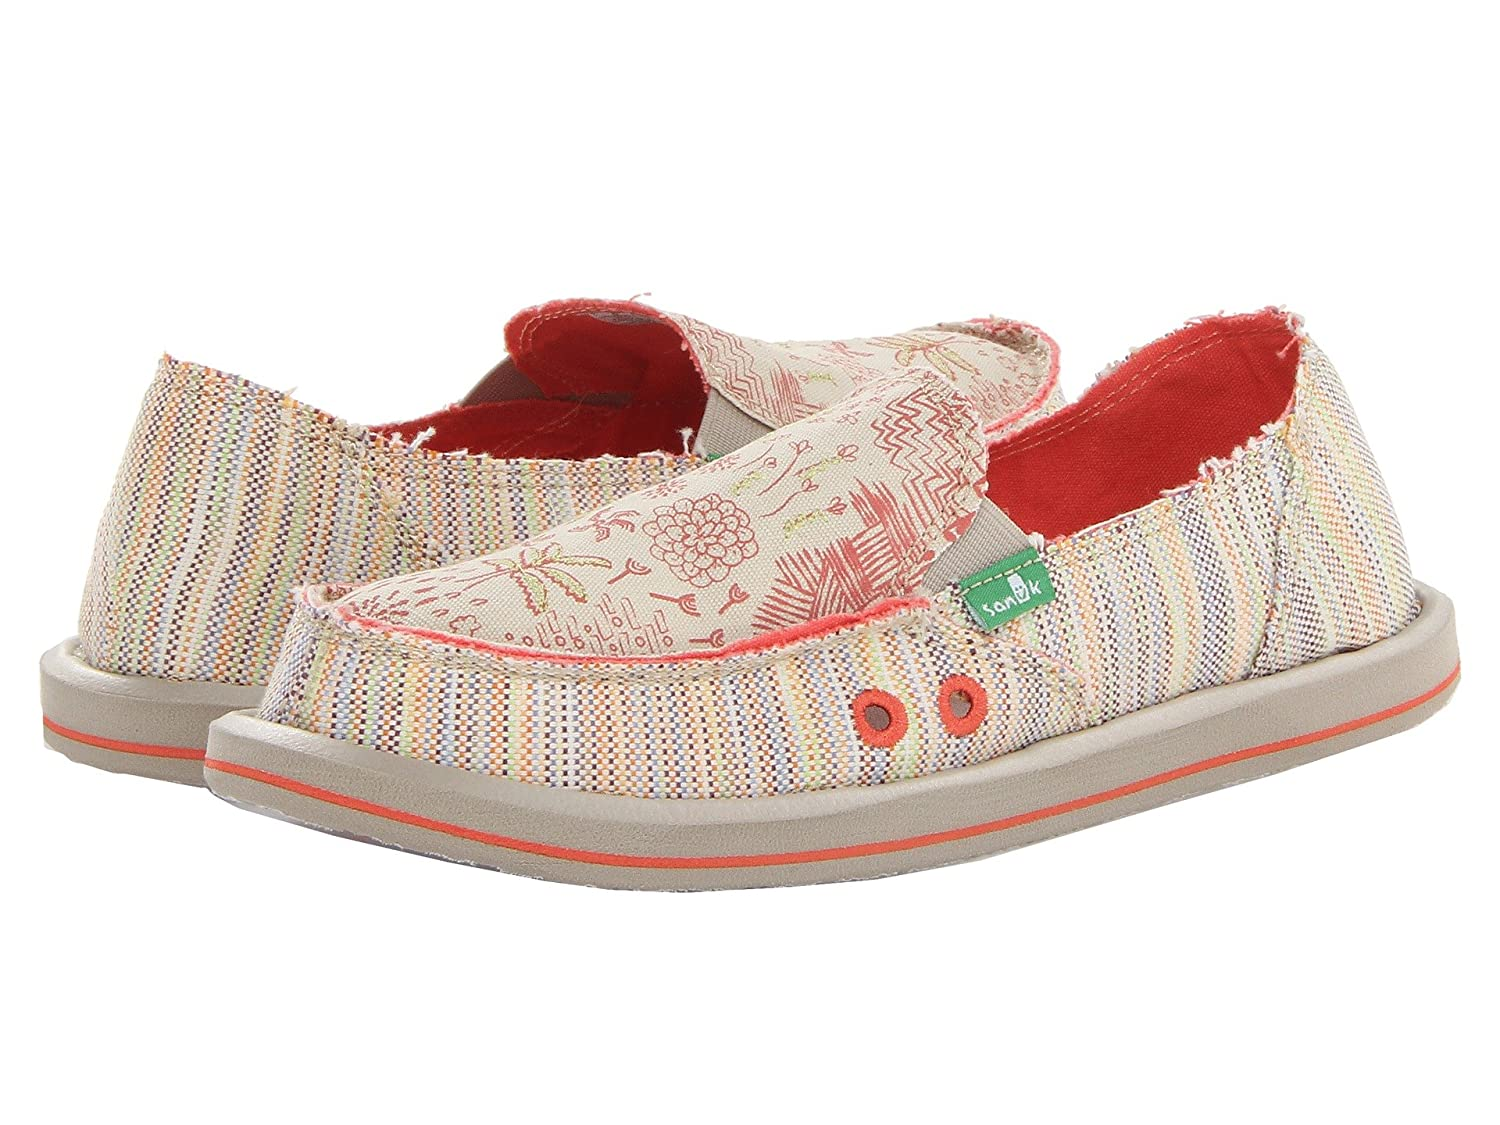 Sanuk Women's Scribble Flat B01M0S578Q 5 B(M) US|Tropical.